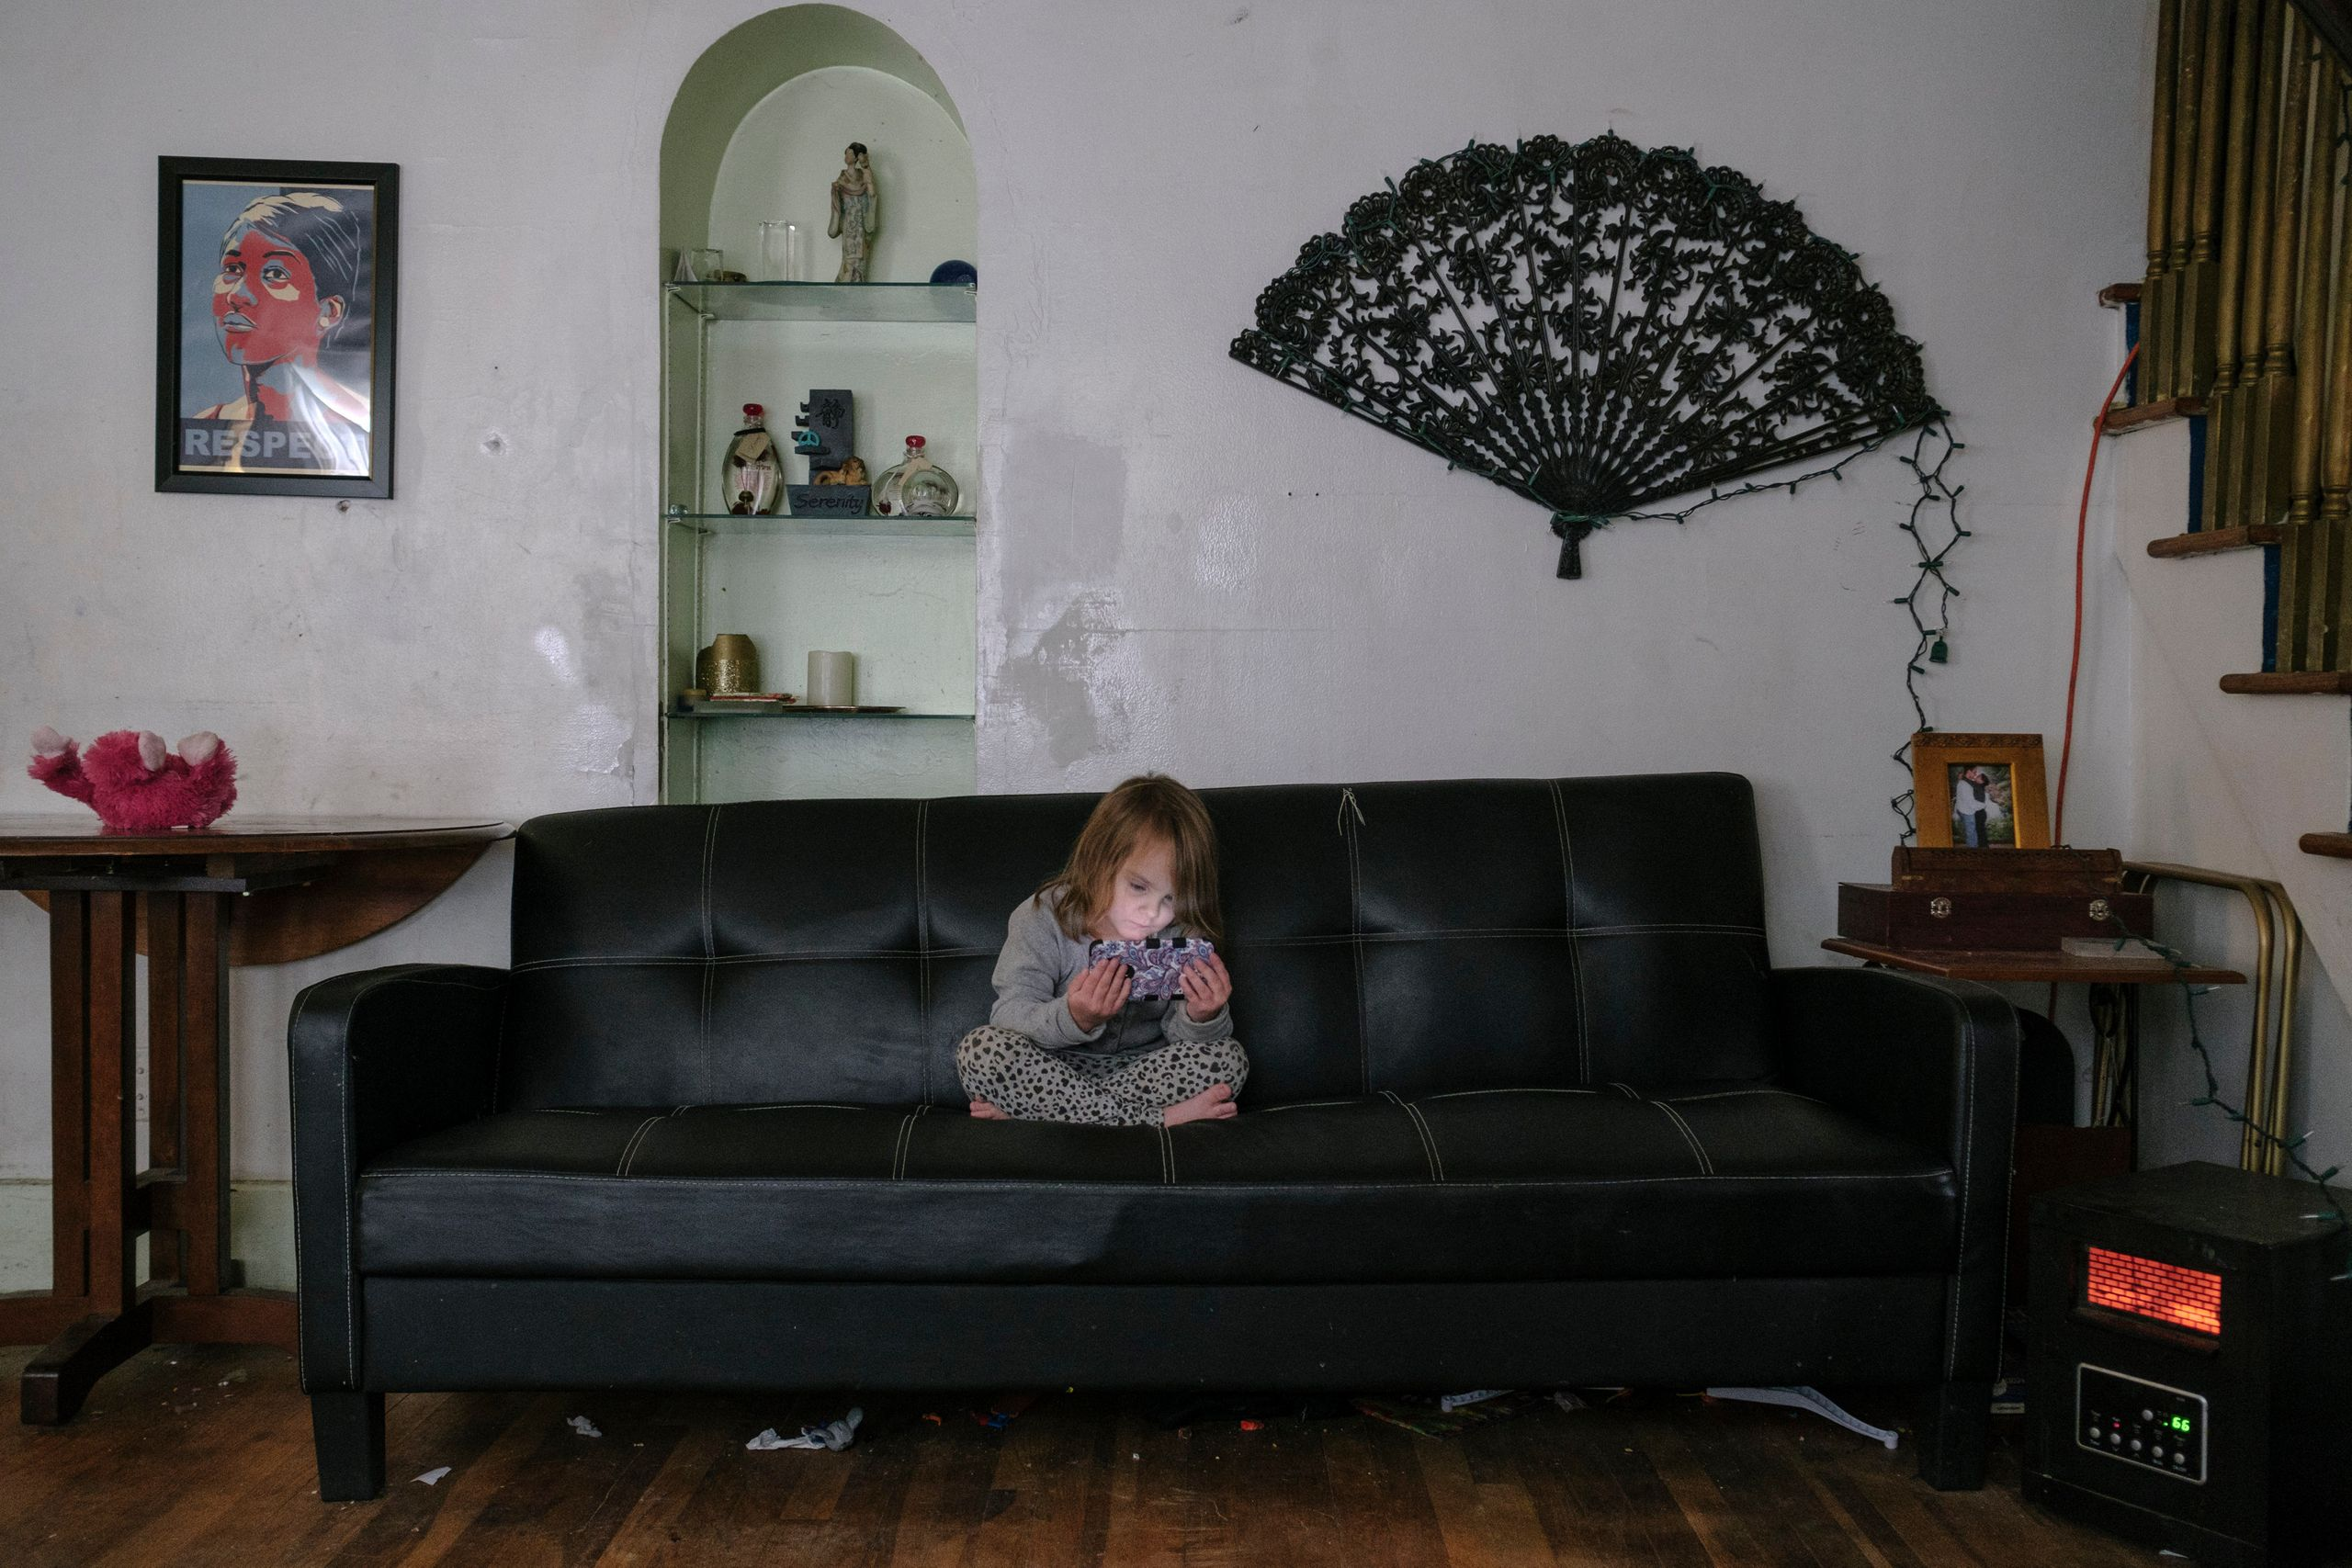 Families Squat In Abandoned Homes As The Housing Crisis Grips